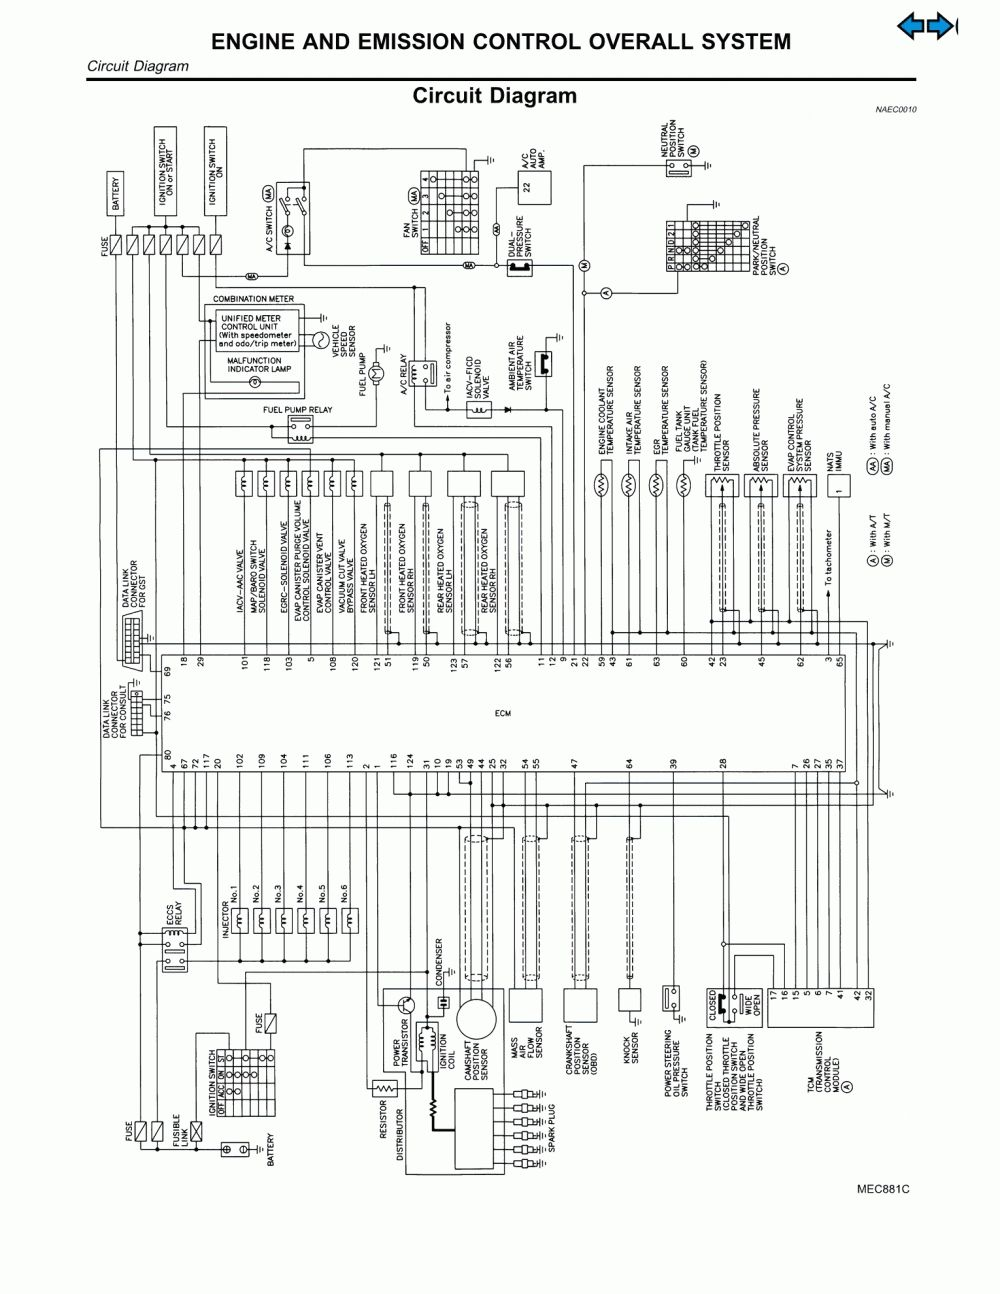 Nissan Leaf Battery Wiring Diagram | WiringDiagram.org ... on 3 wire pressure sensor circuit diagram, sensor switch relay, sensor switch sensor, 3 speed sensor wire diagram, sensor switch circuit,